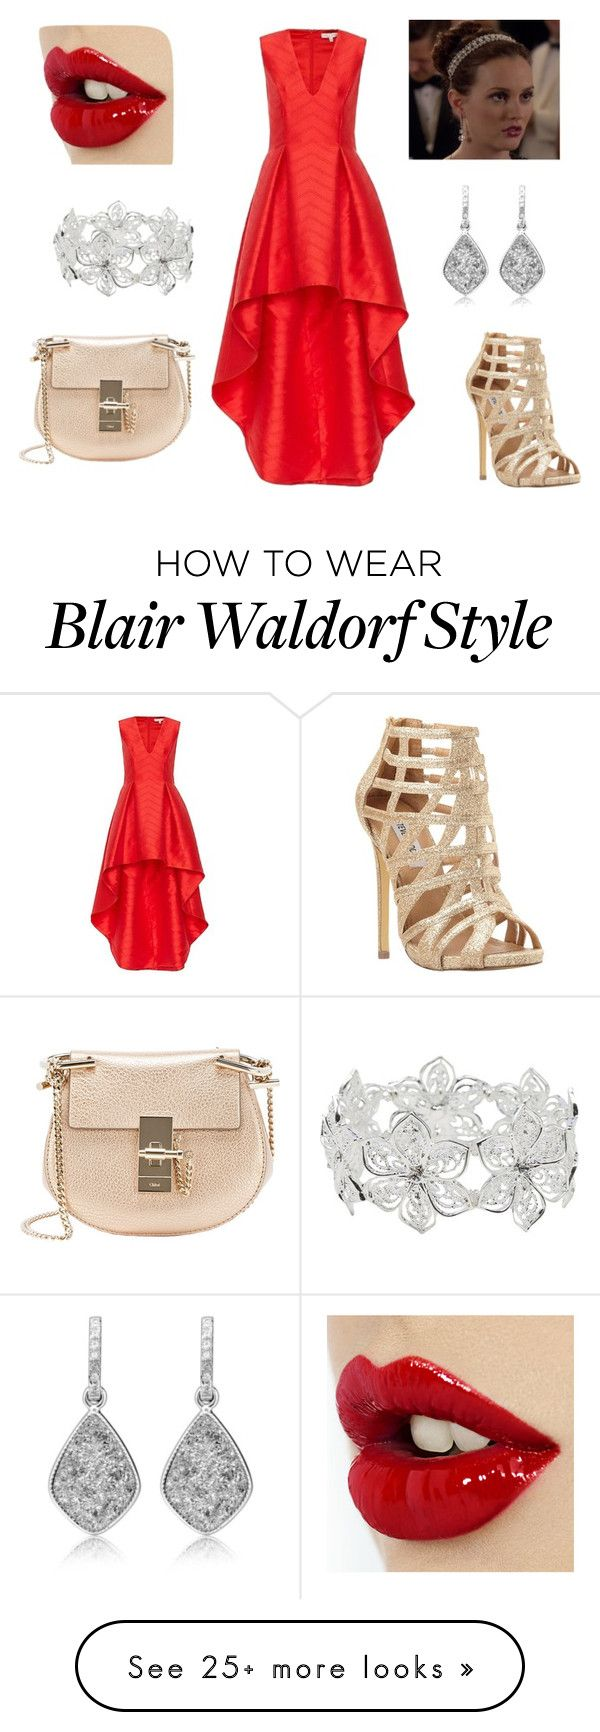 """""""Blair Waldorf Outfits"""" by mari-lomova on Polyvore featuring Steve Madden, Chloé, Alexis, M&Co, women's clothing, women, female, woman, misses and juniors"""